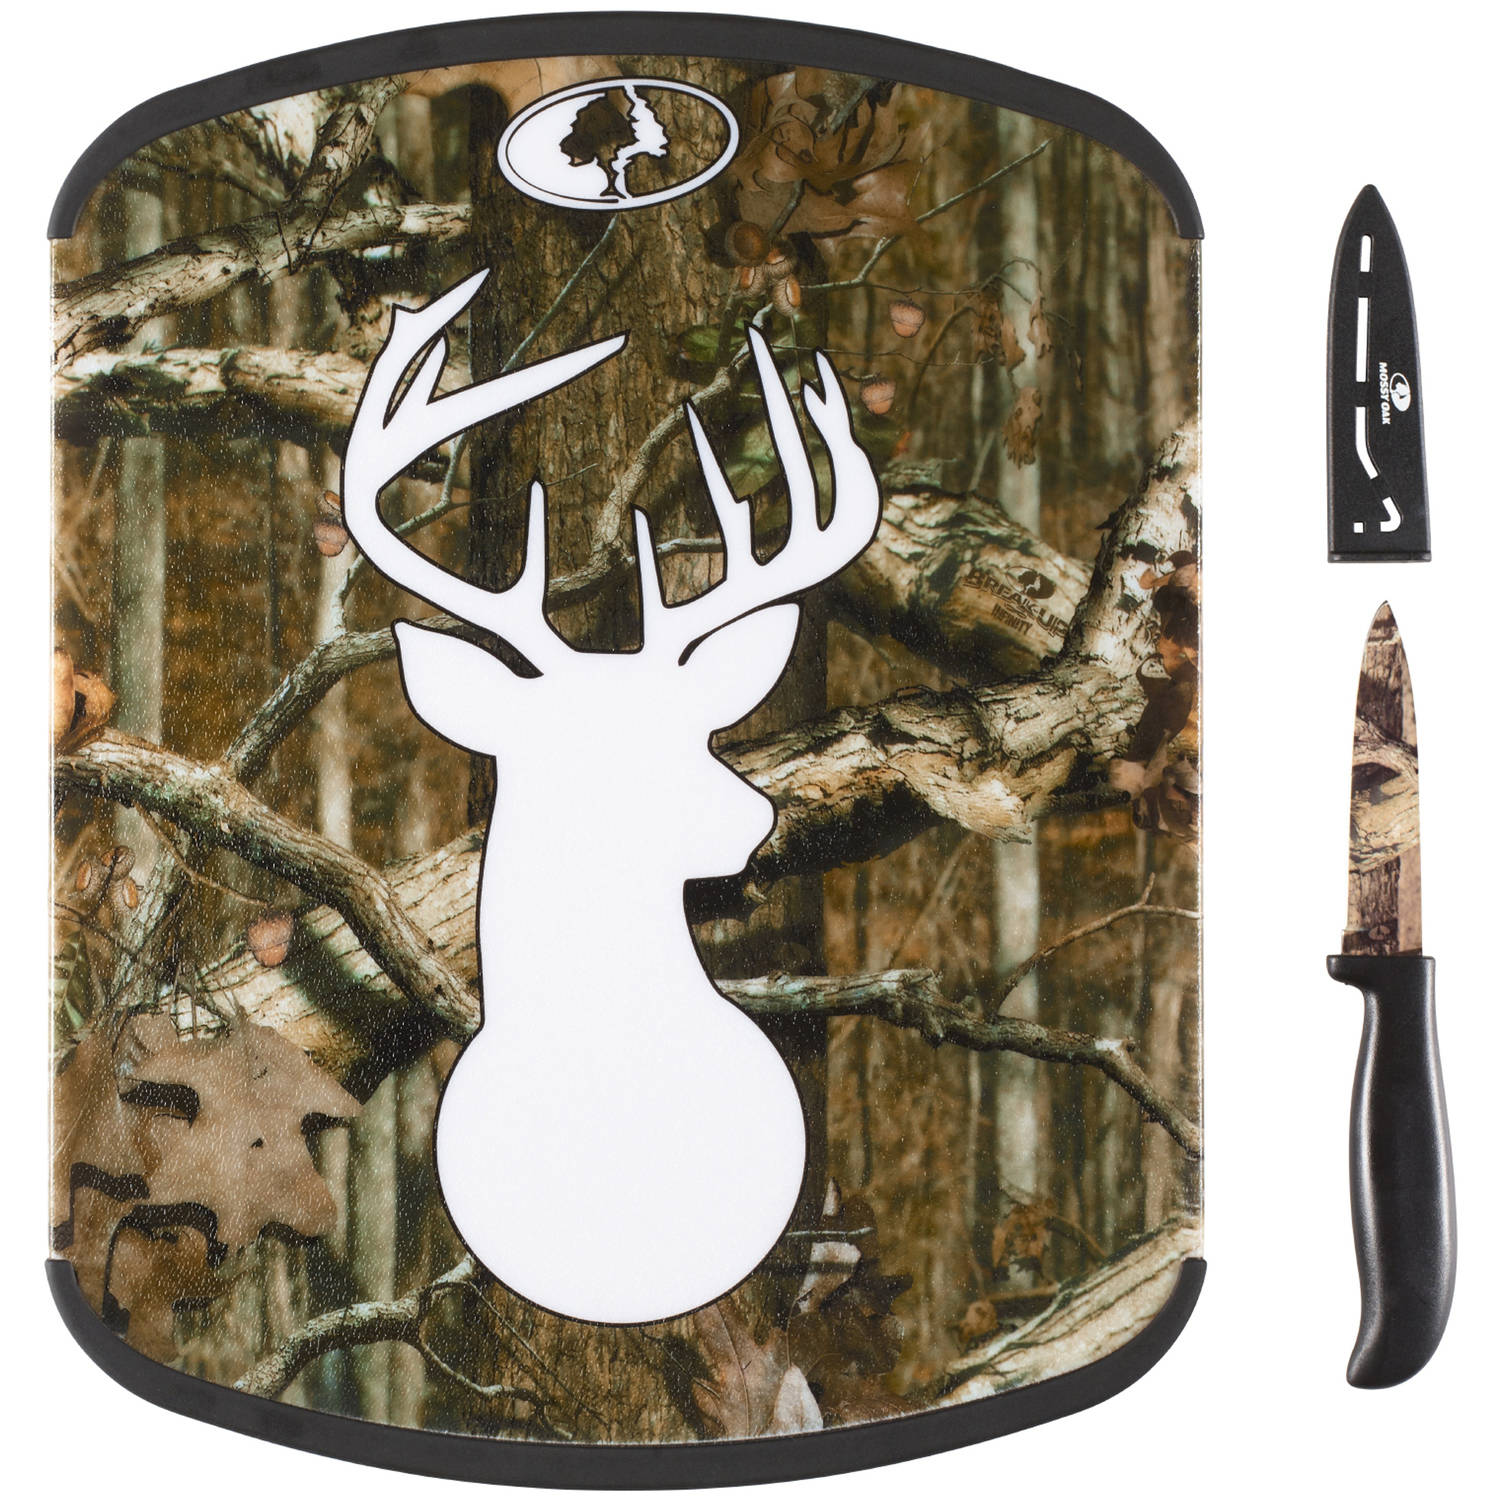 """Mossy Oak 11 Inch x 14 Inch Cutting Board and 3.5 Inch Paring Knife Set, Break Up Infinity, """"Stag Head"""" Design"""